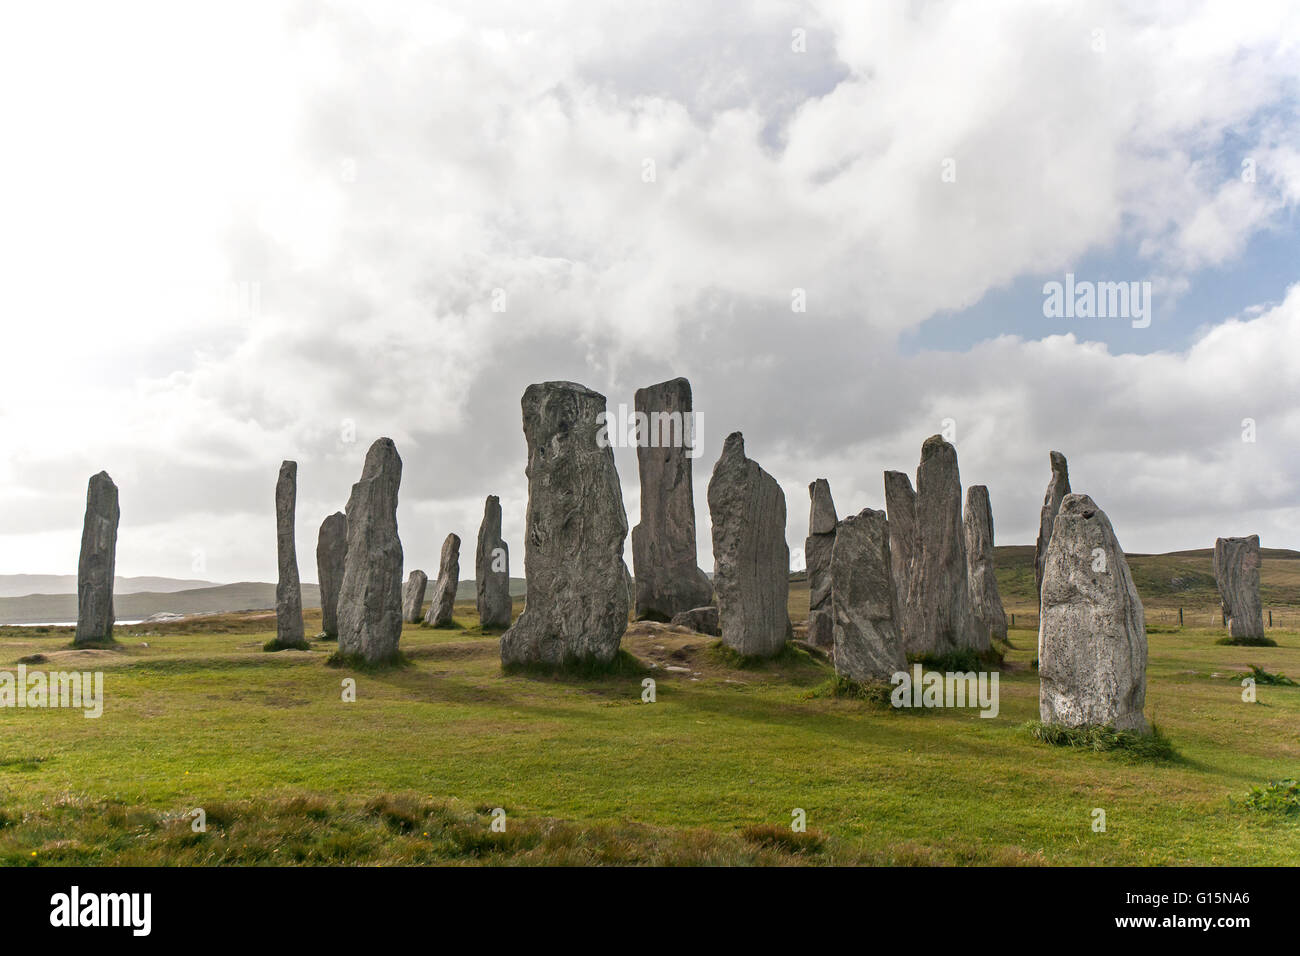 Inner circle of the standing stones of Callanish/ Calanais, Isle of Lewis. Outer Hebrides, Scotland - Stock Image